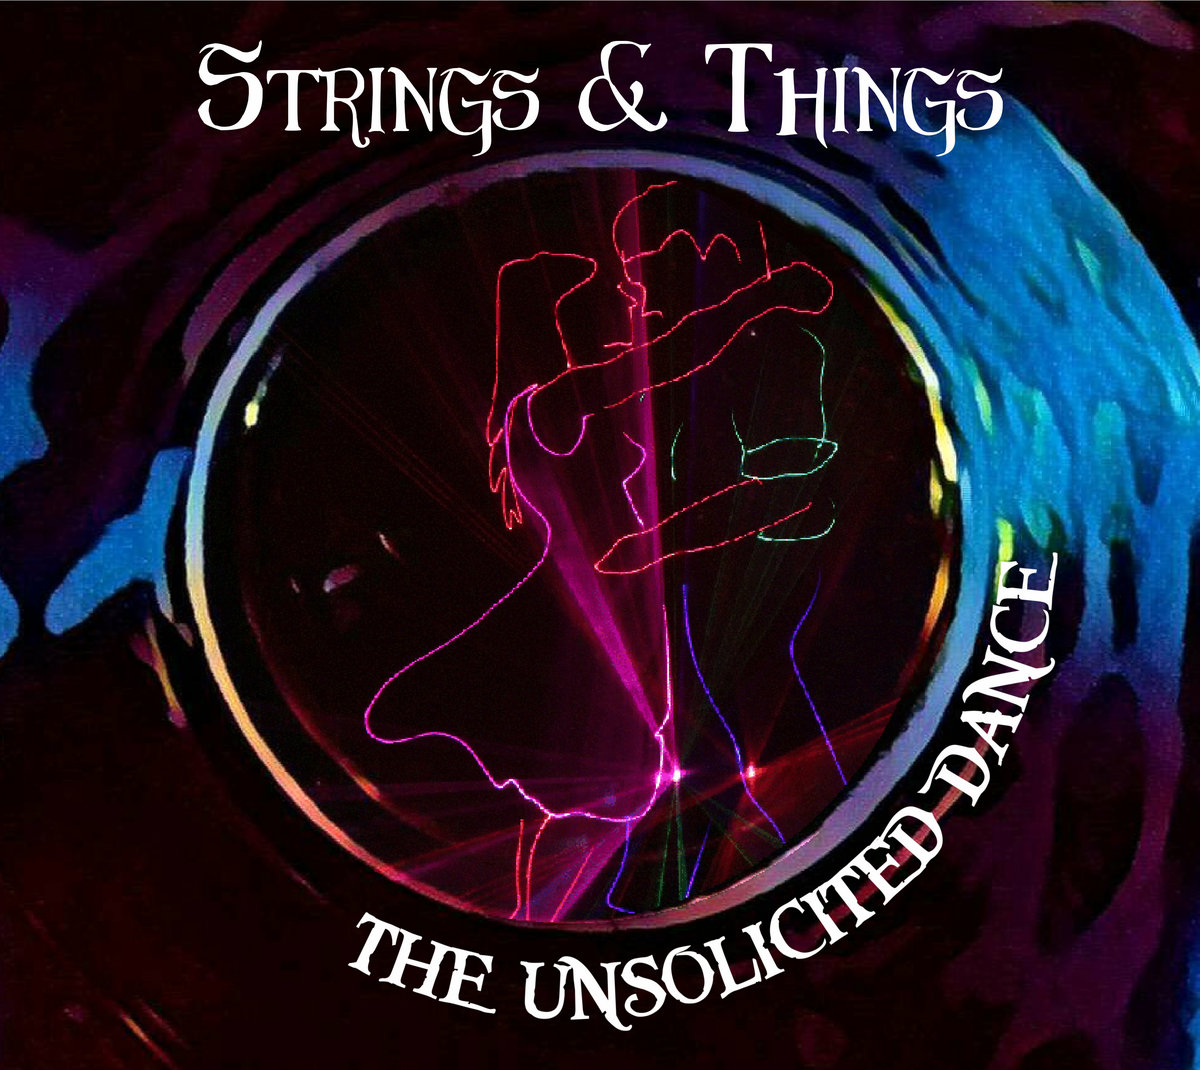 Strings & Things - The Unsolicited Dance (2021)